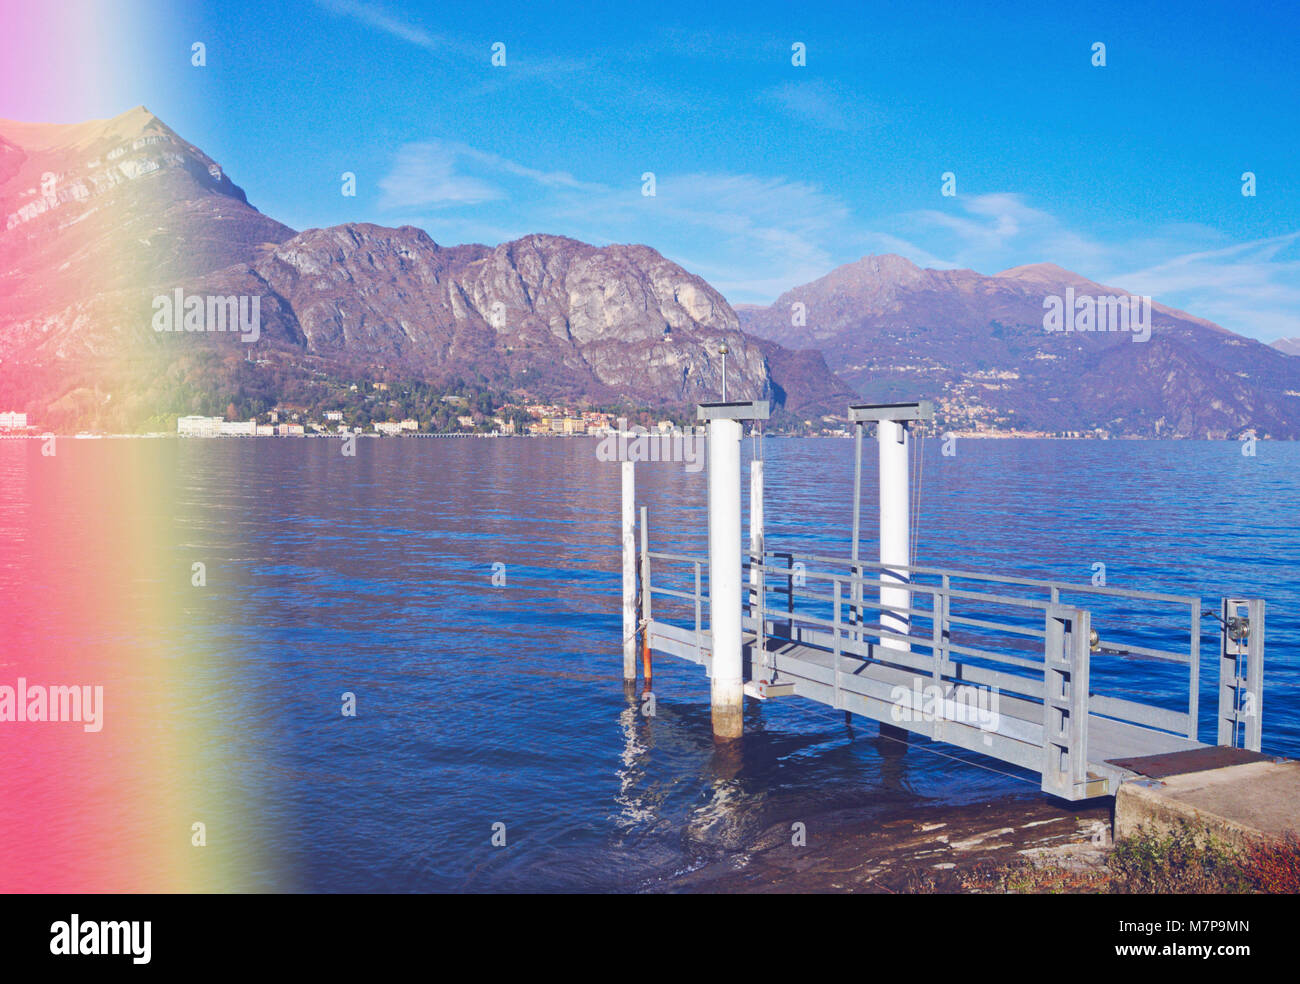 Lake Como with light leak effect - Stock Image